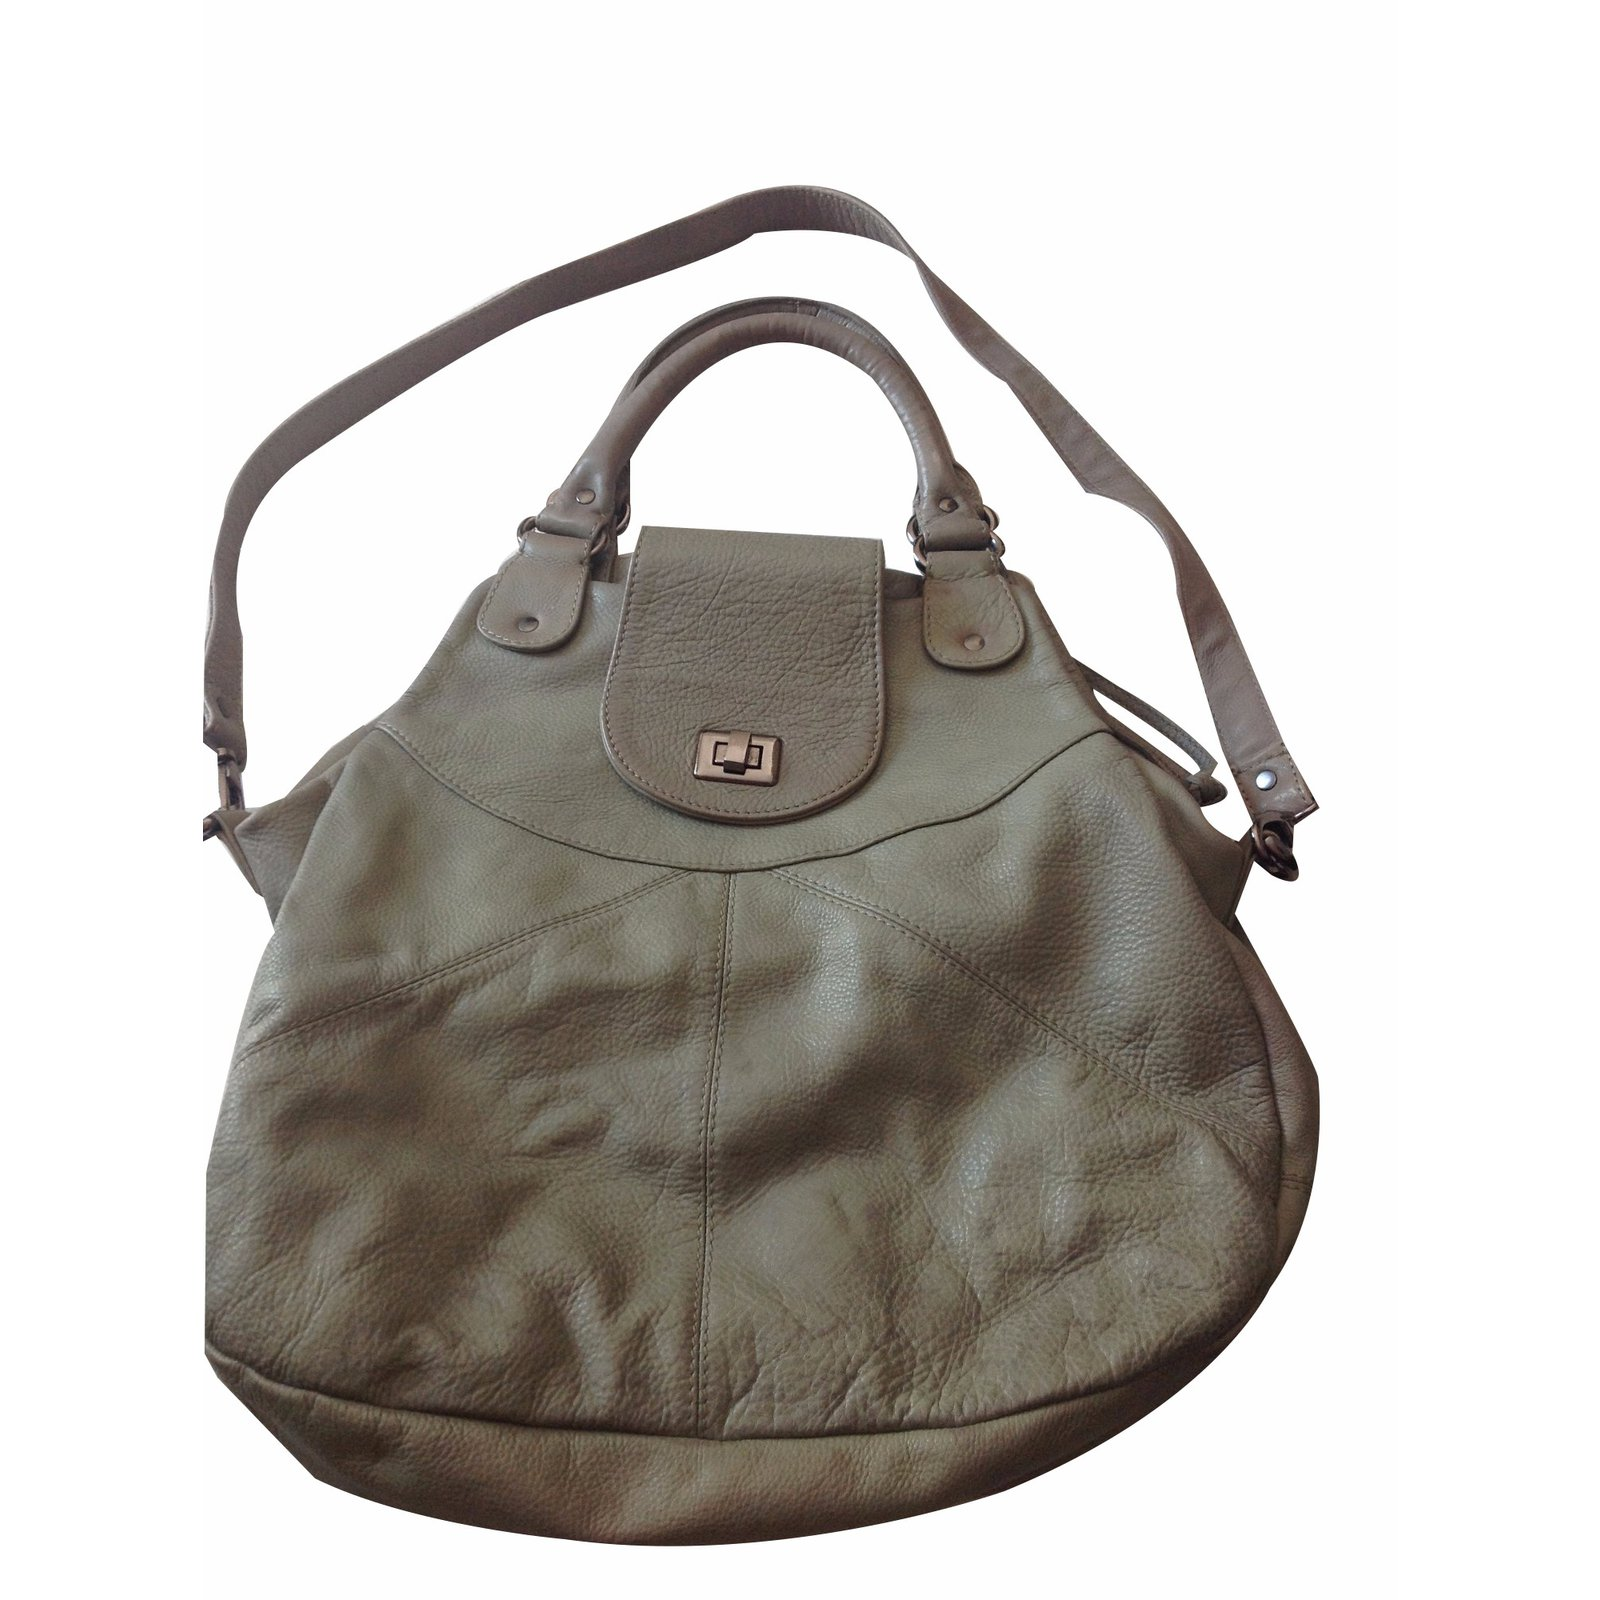 Paul Joe Sister Handbag Handbags Leather Grey Ref 20833